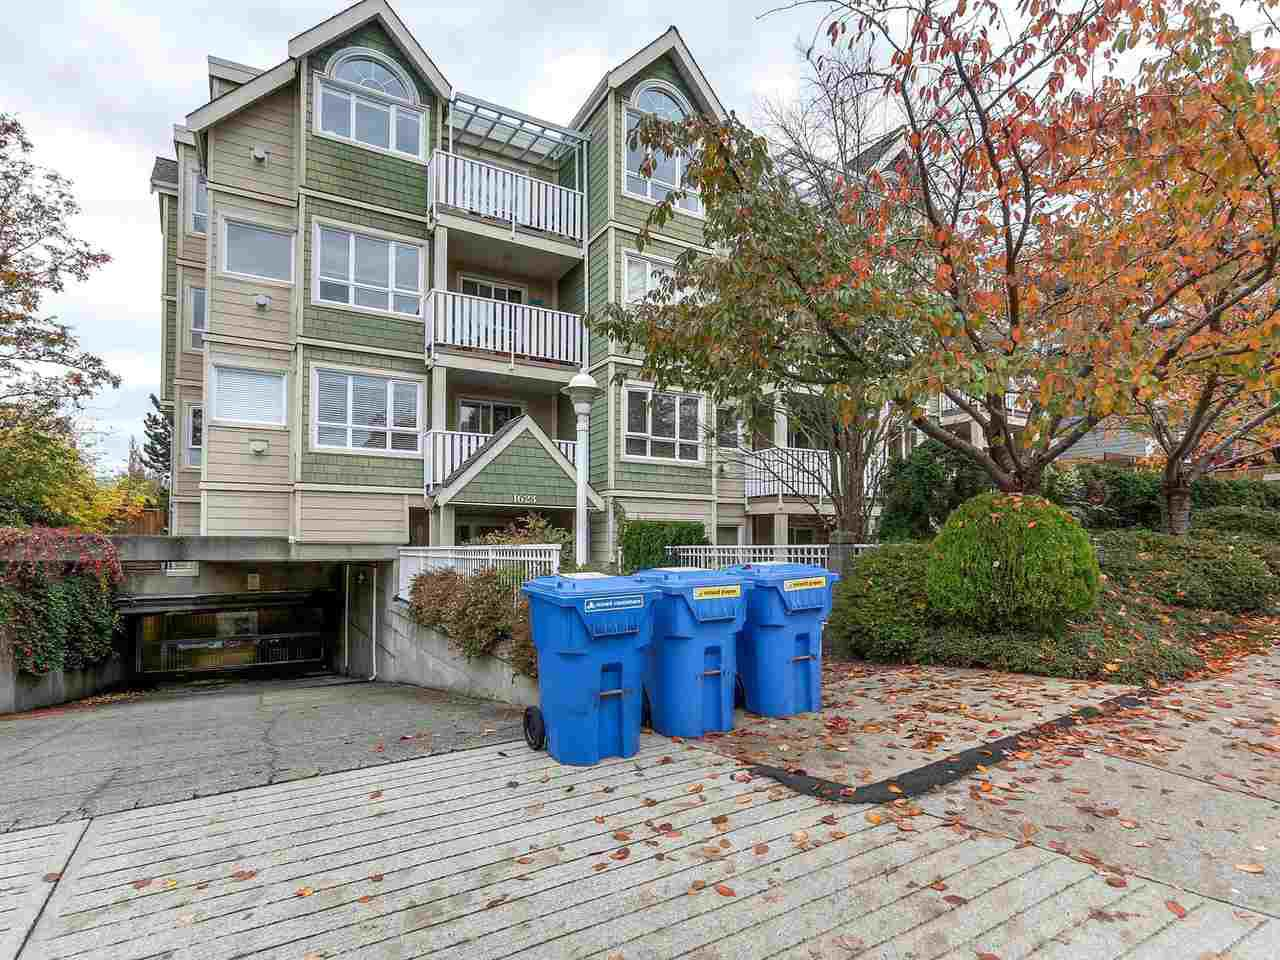 "Main Photo: 301 1623 E 2ND Avenue in Vancouver: Grandview VE Condo for sale in ""GRANDVIEW MANOR"" (Vancouver East)  : MLS®# R2122830"